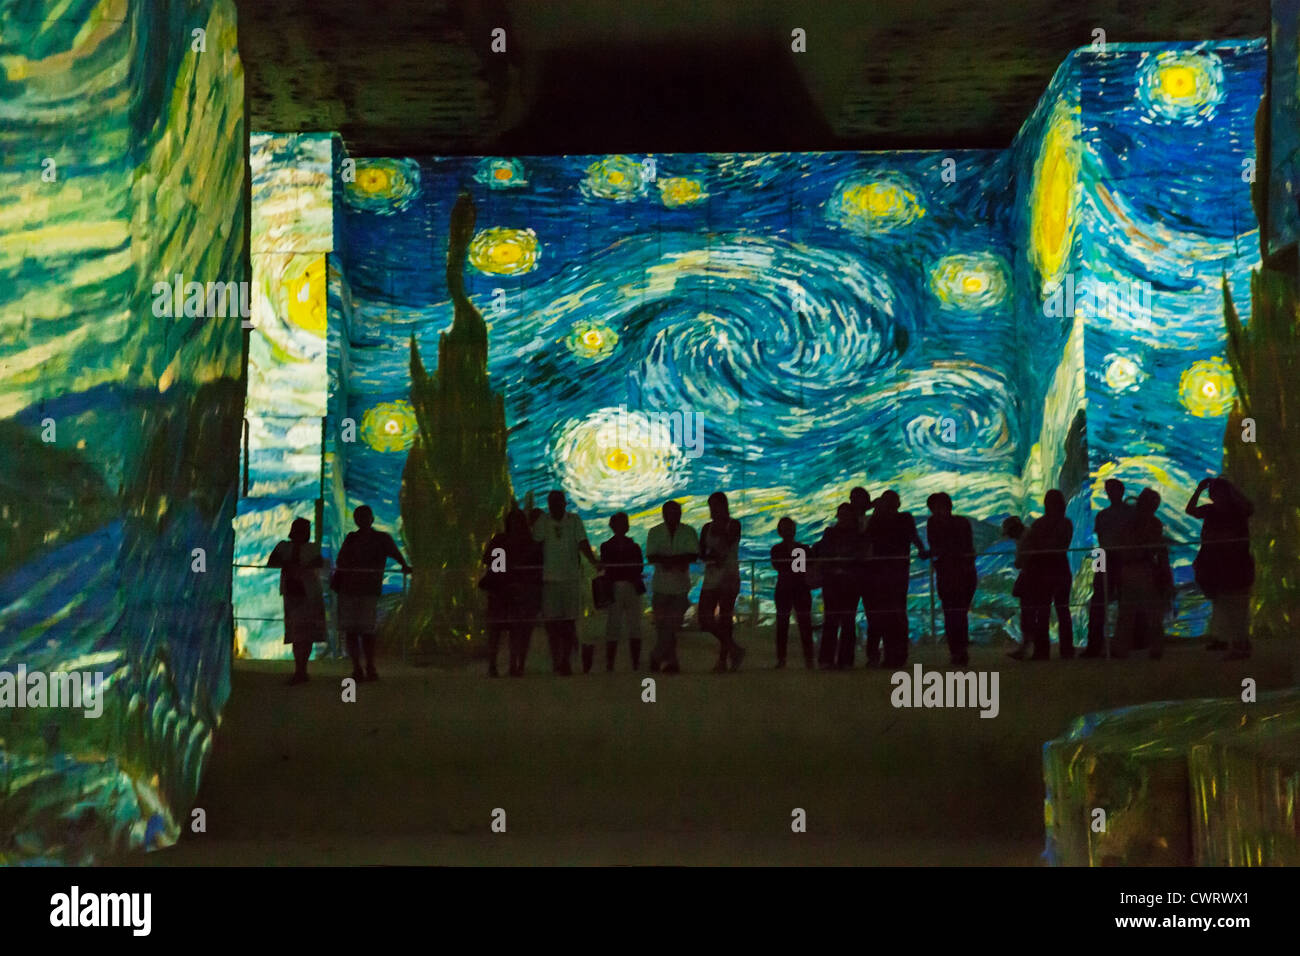 starry night van gogh stock photos starry night van gogh stock massive underground van gogh art show in the bauxite mine caves of les baux de